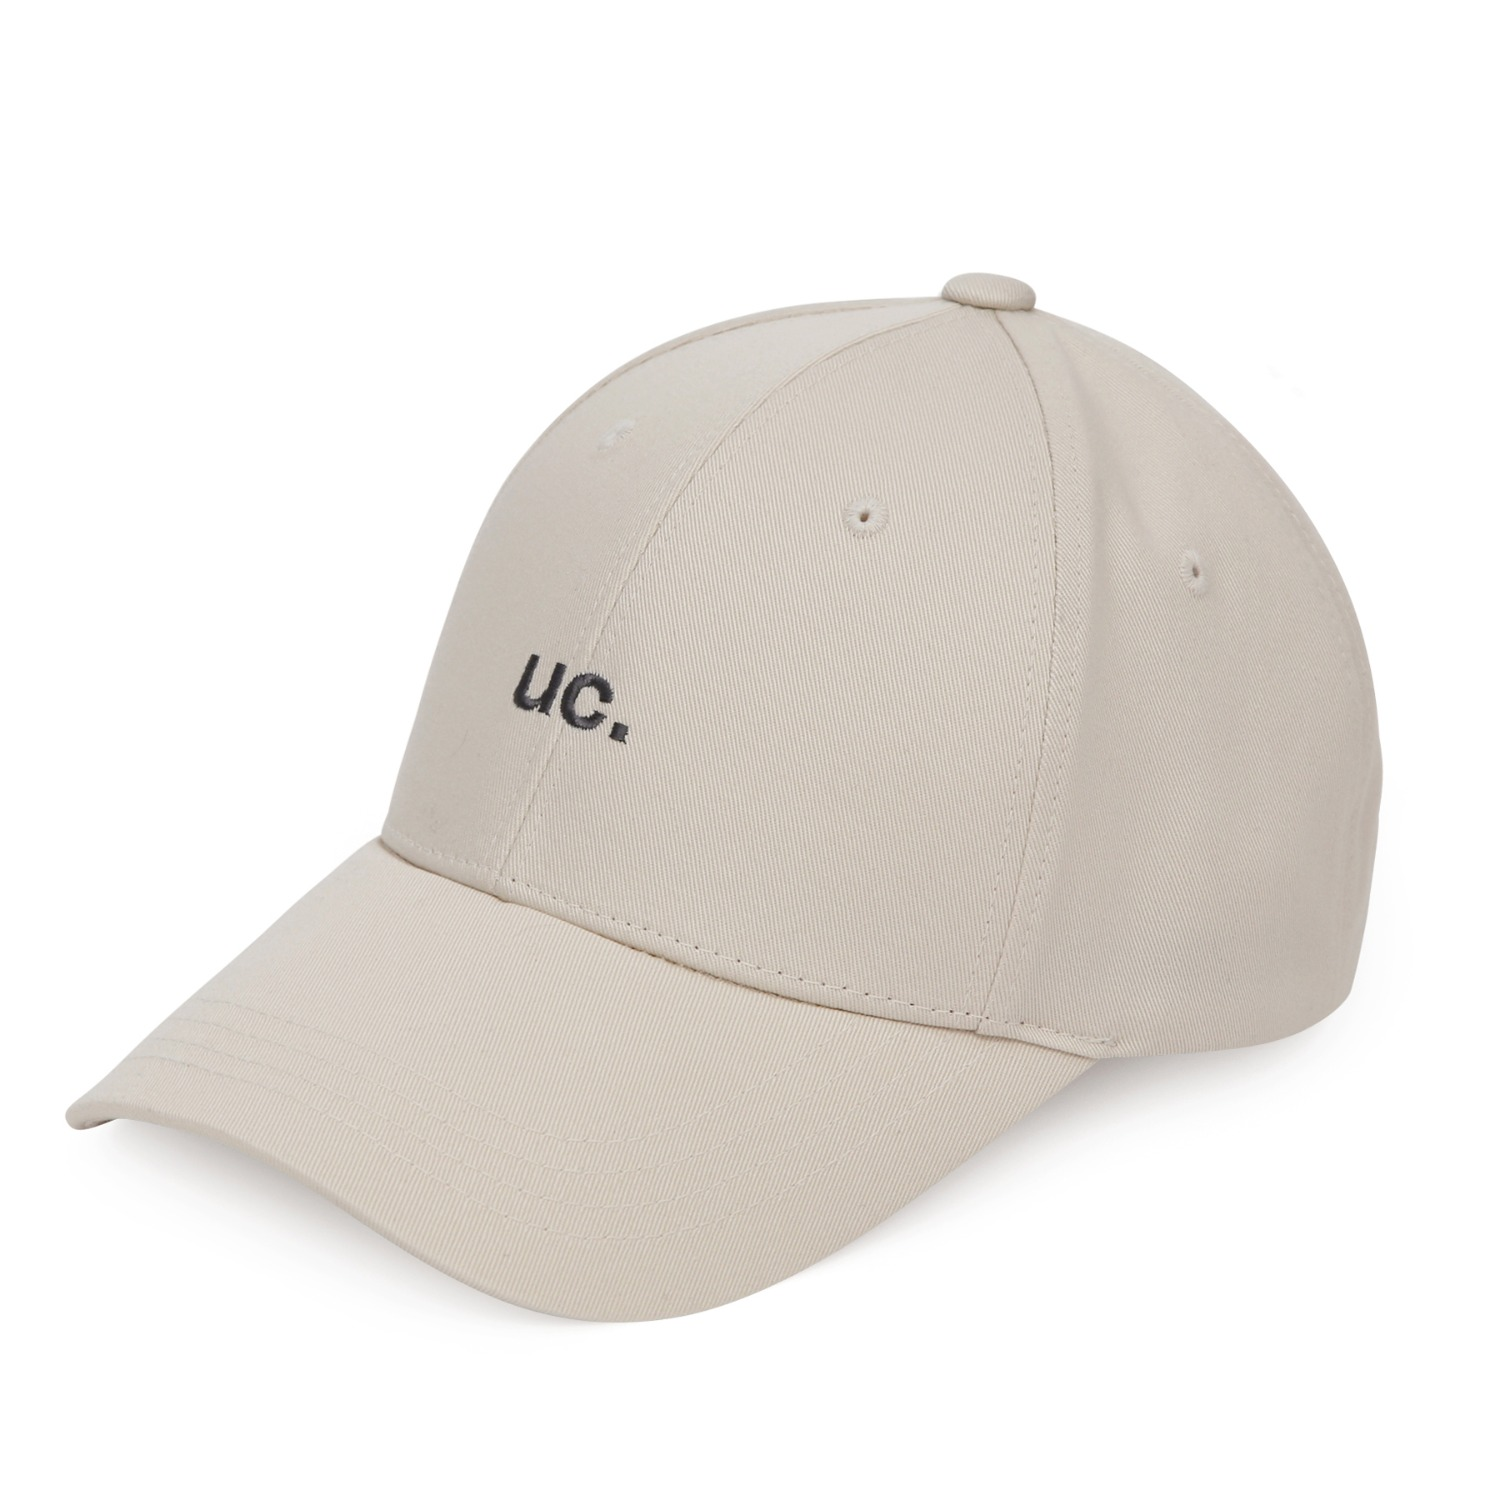 UC / DEEP B B / L CREAM